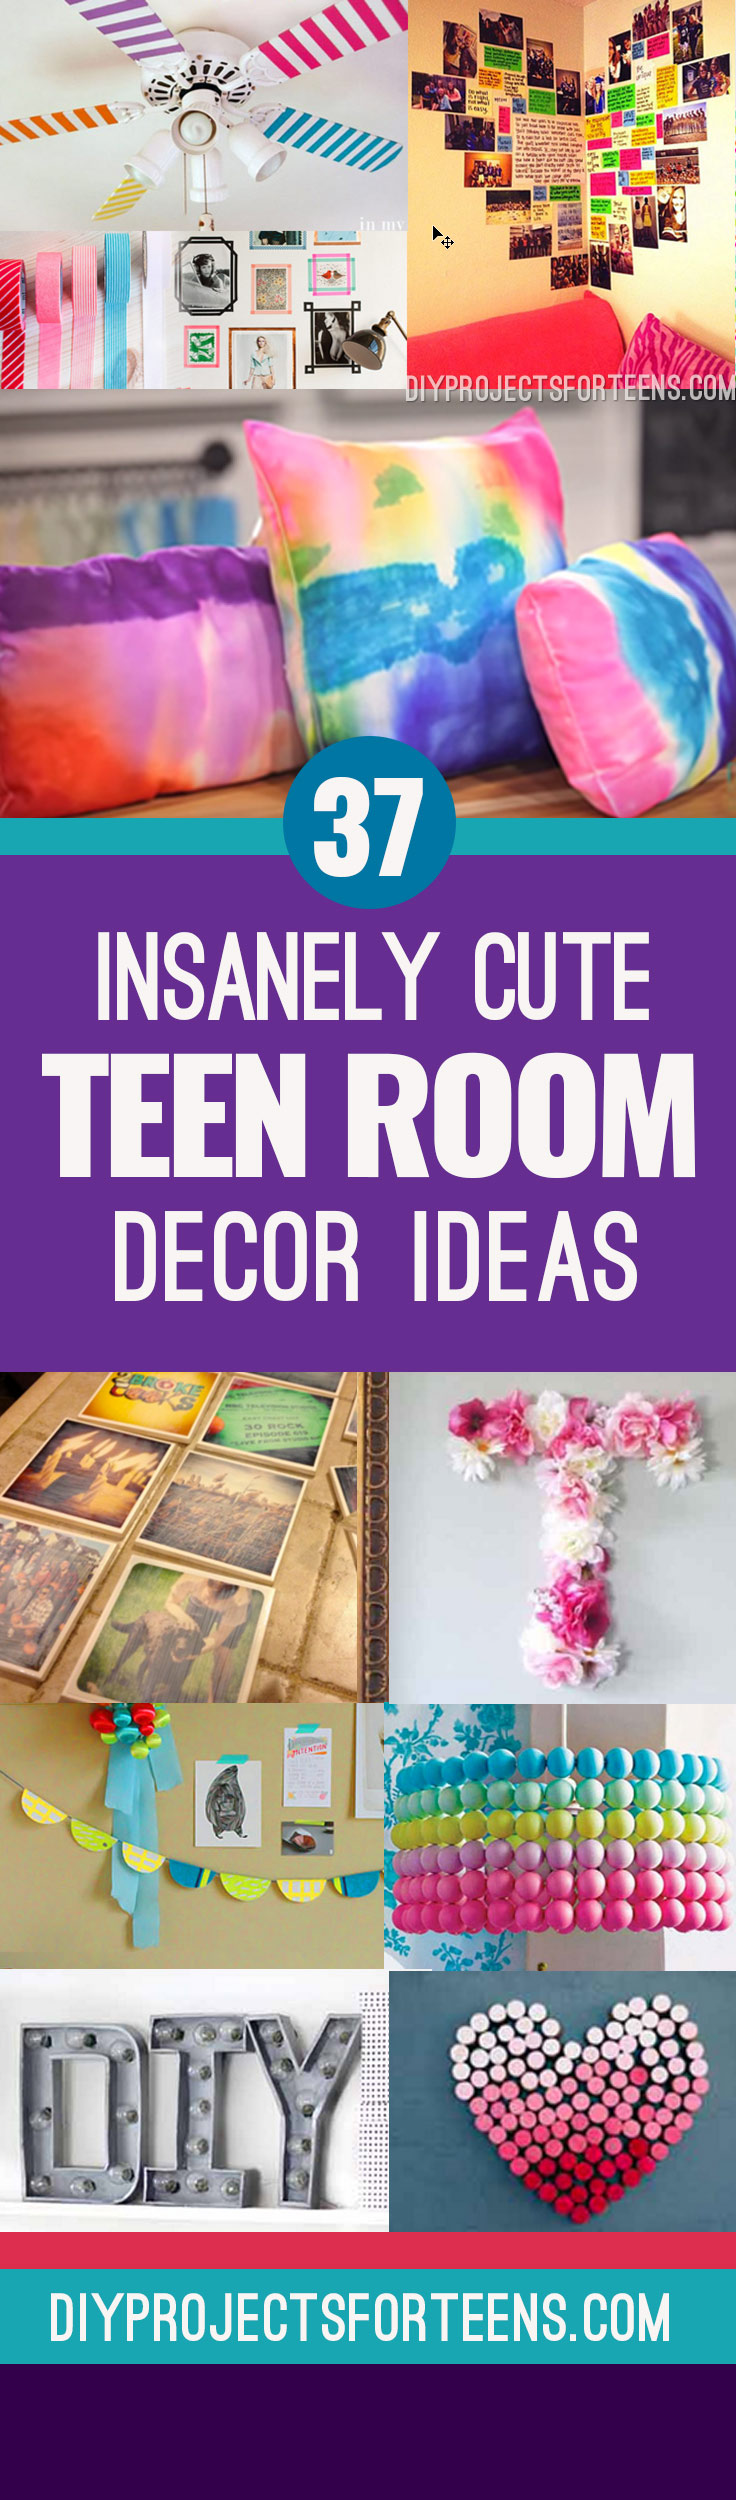 Awesome bedroom ideas for teenage girls - Cute Diy Room Decor Ideas For Teens Best Diy Room Decor Ideas From Pinterest